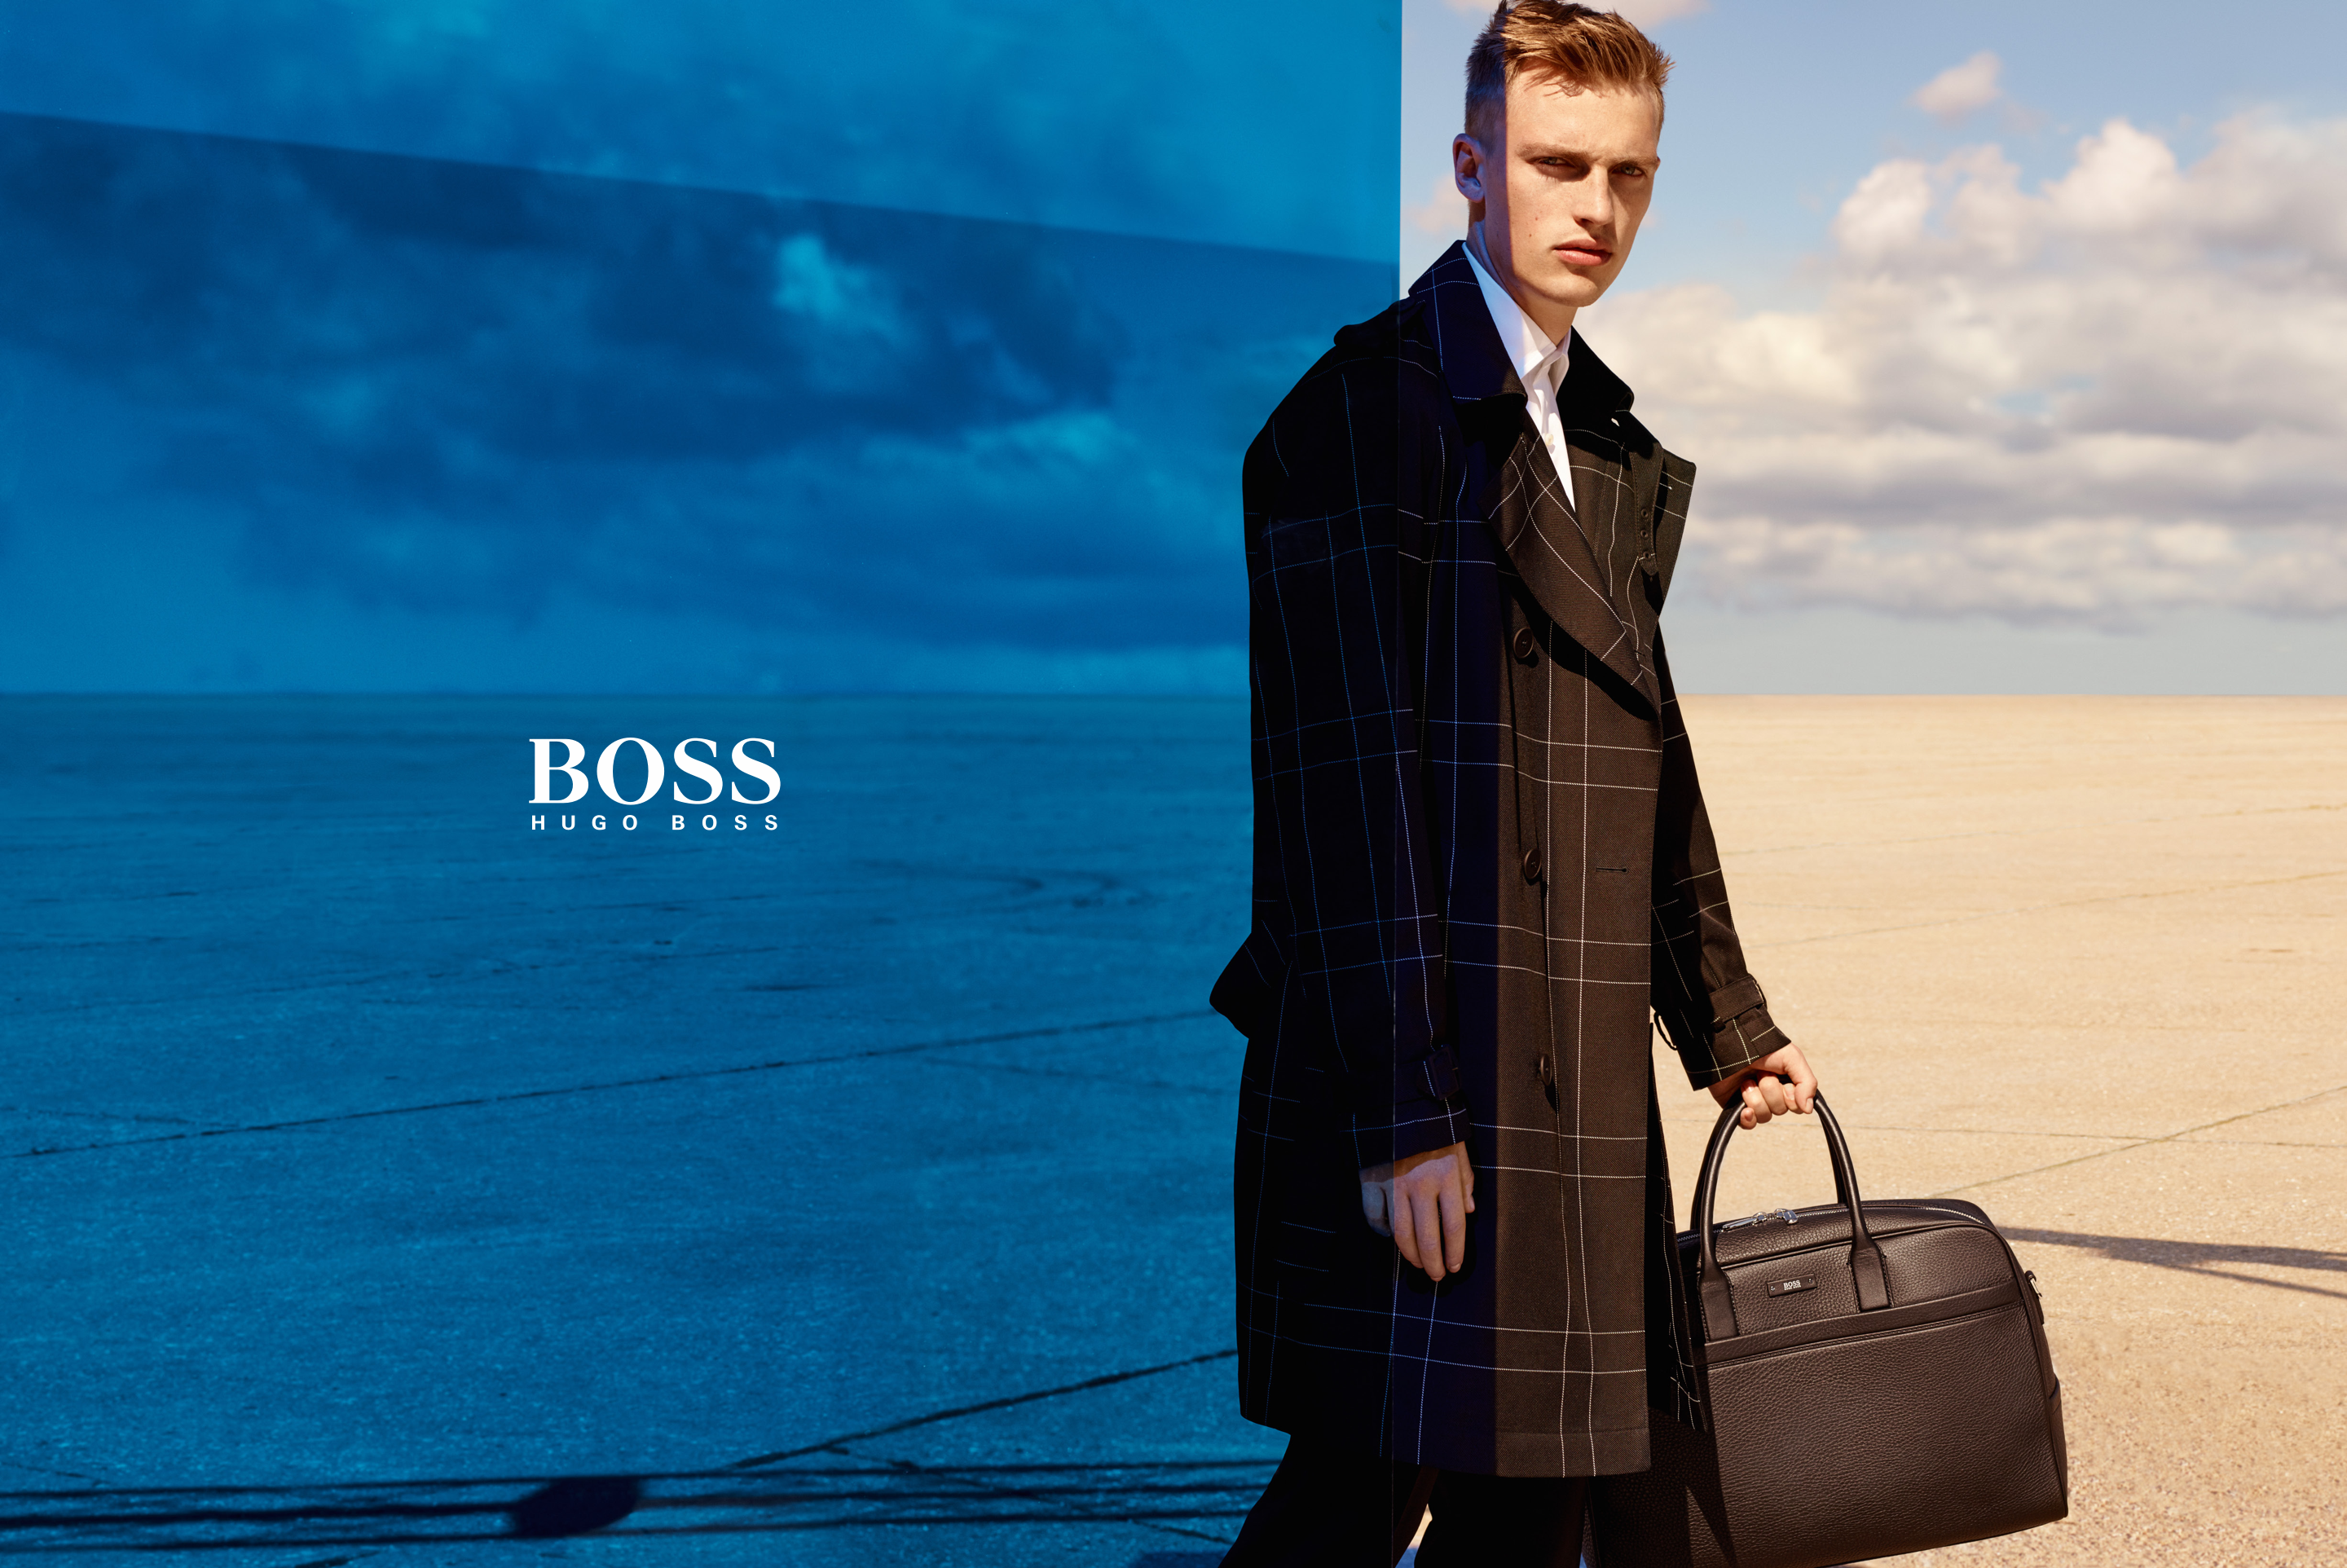 Hugo Boss tailors new customer experience